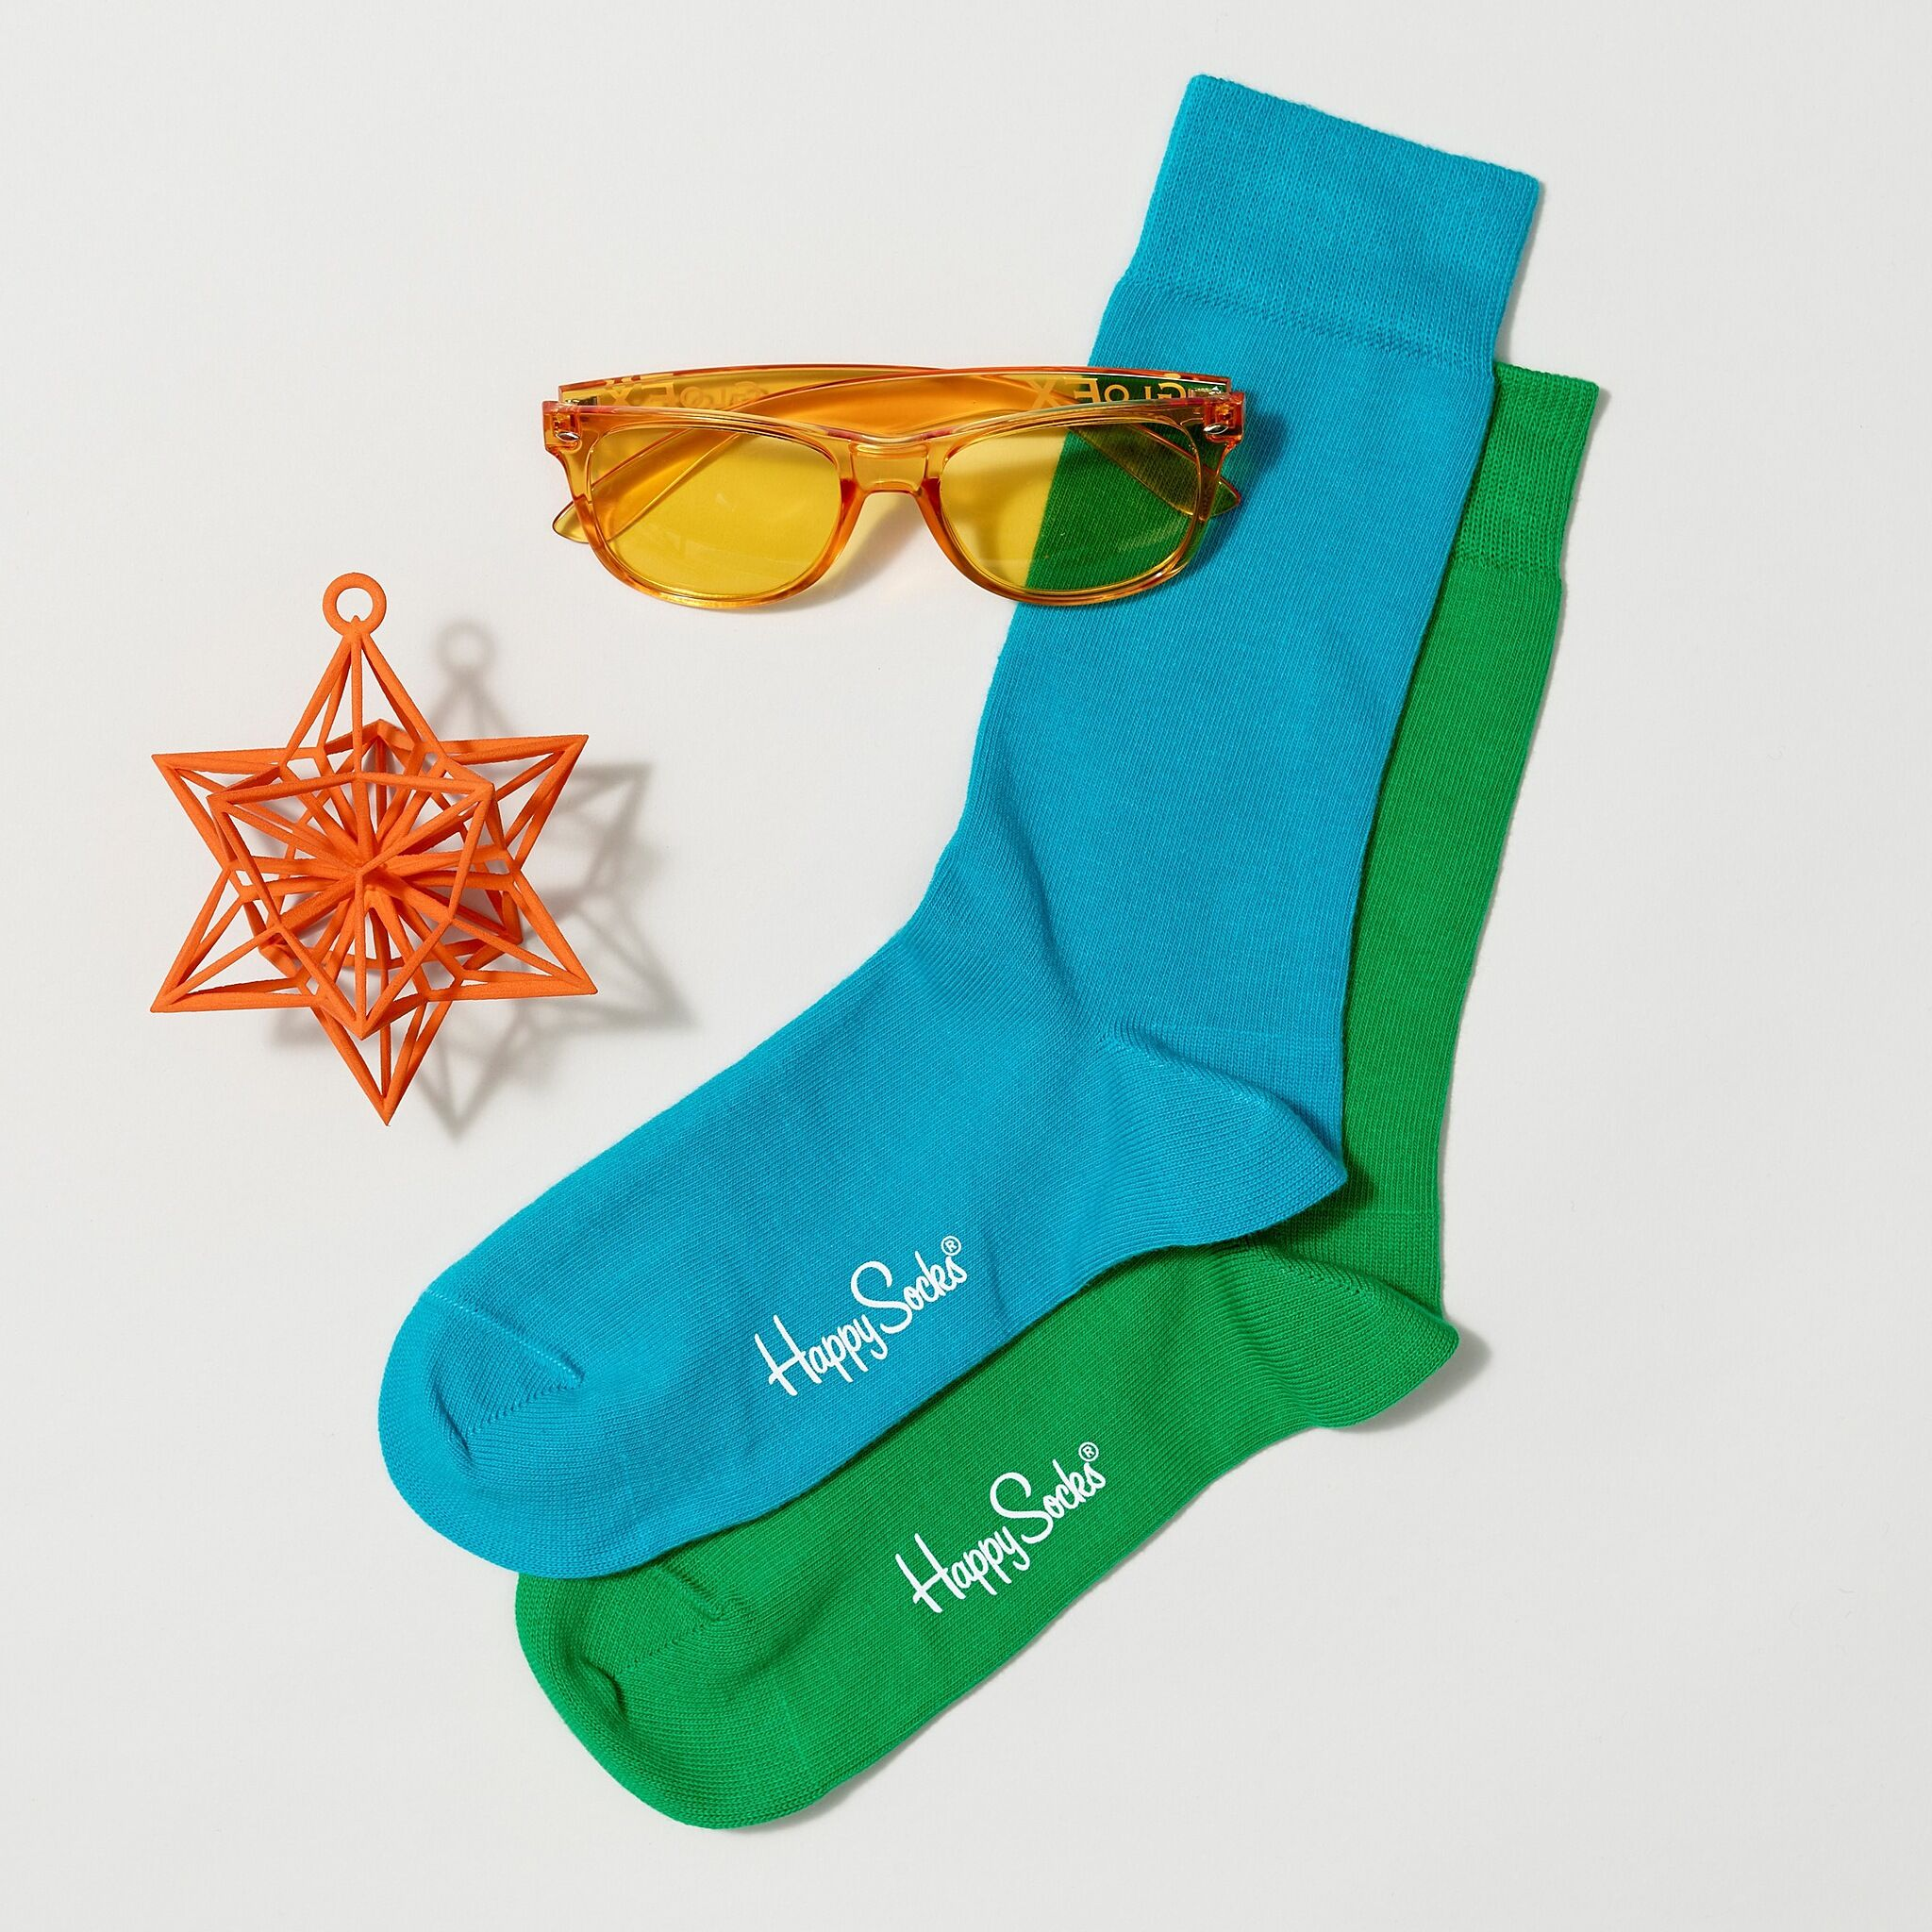 A photo of colorful socks, colored sunglasses, and a Christmas ornament.